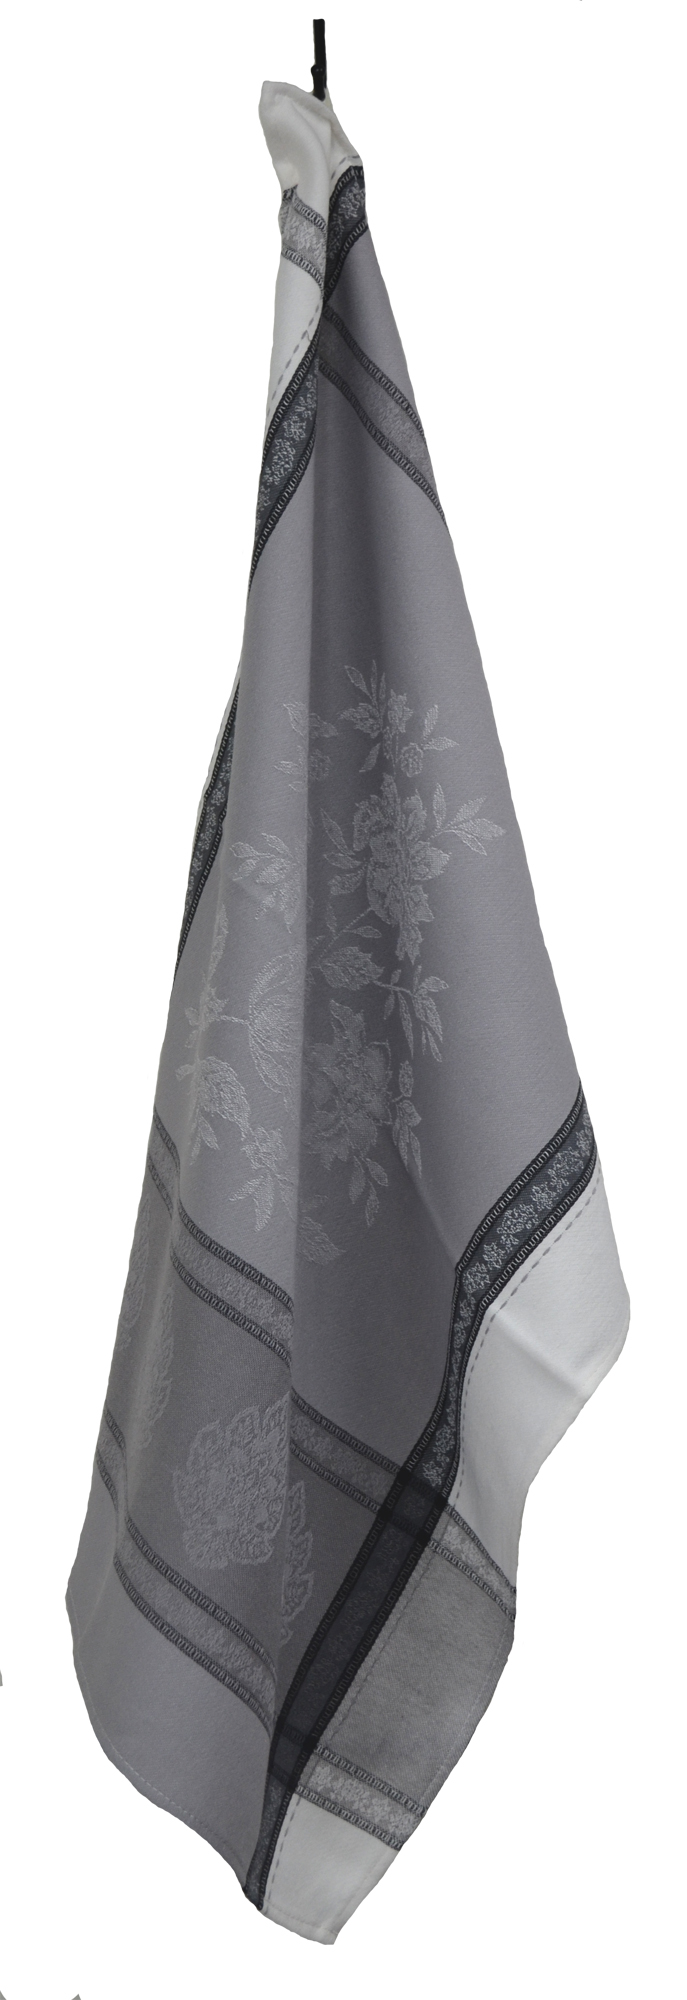 """Floral French Jacquard Tea Towel - Collection """"Capris"""" Grey, Size: 20 x 27 inches, Price CAN$19.95"""